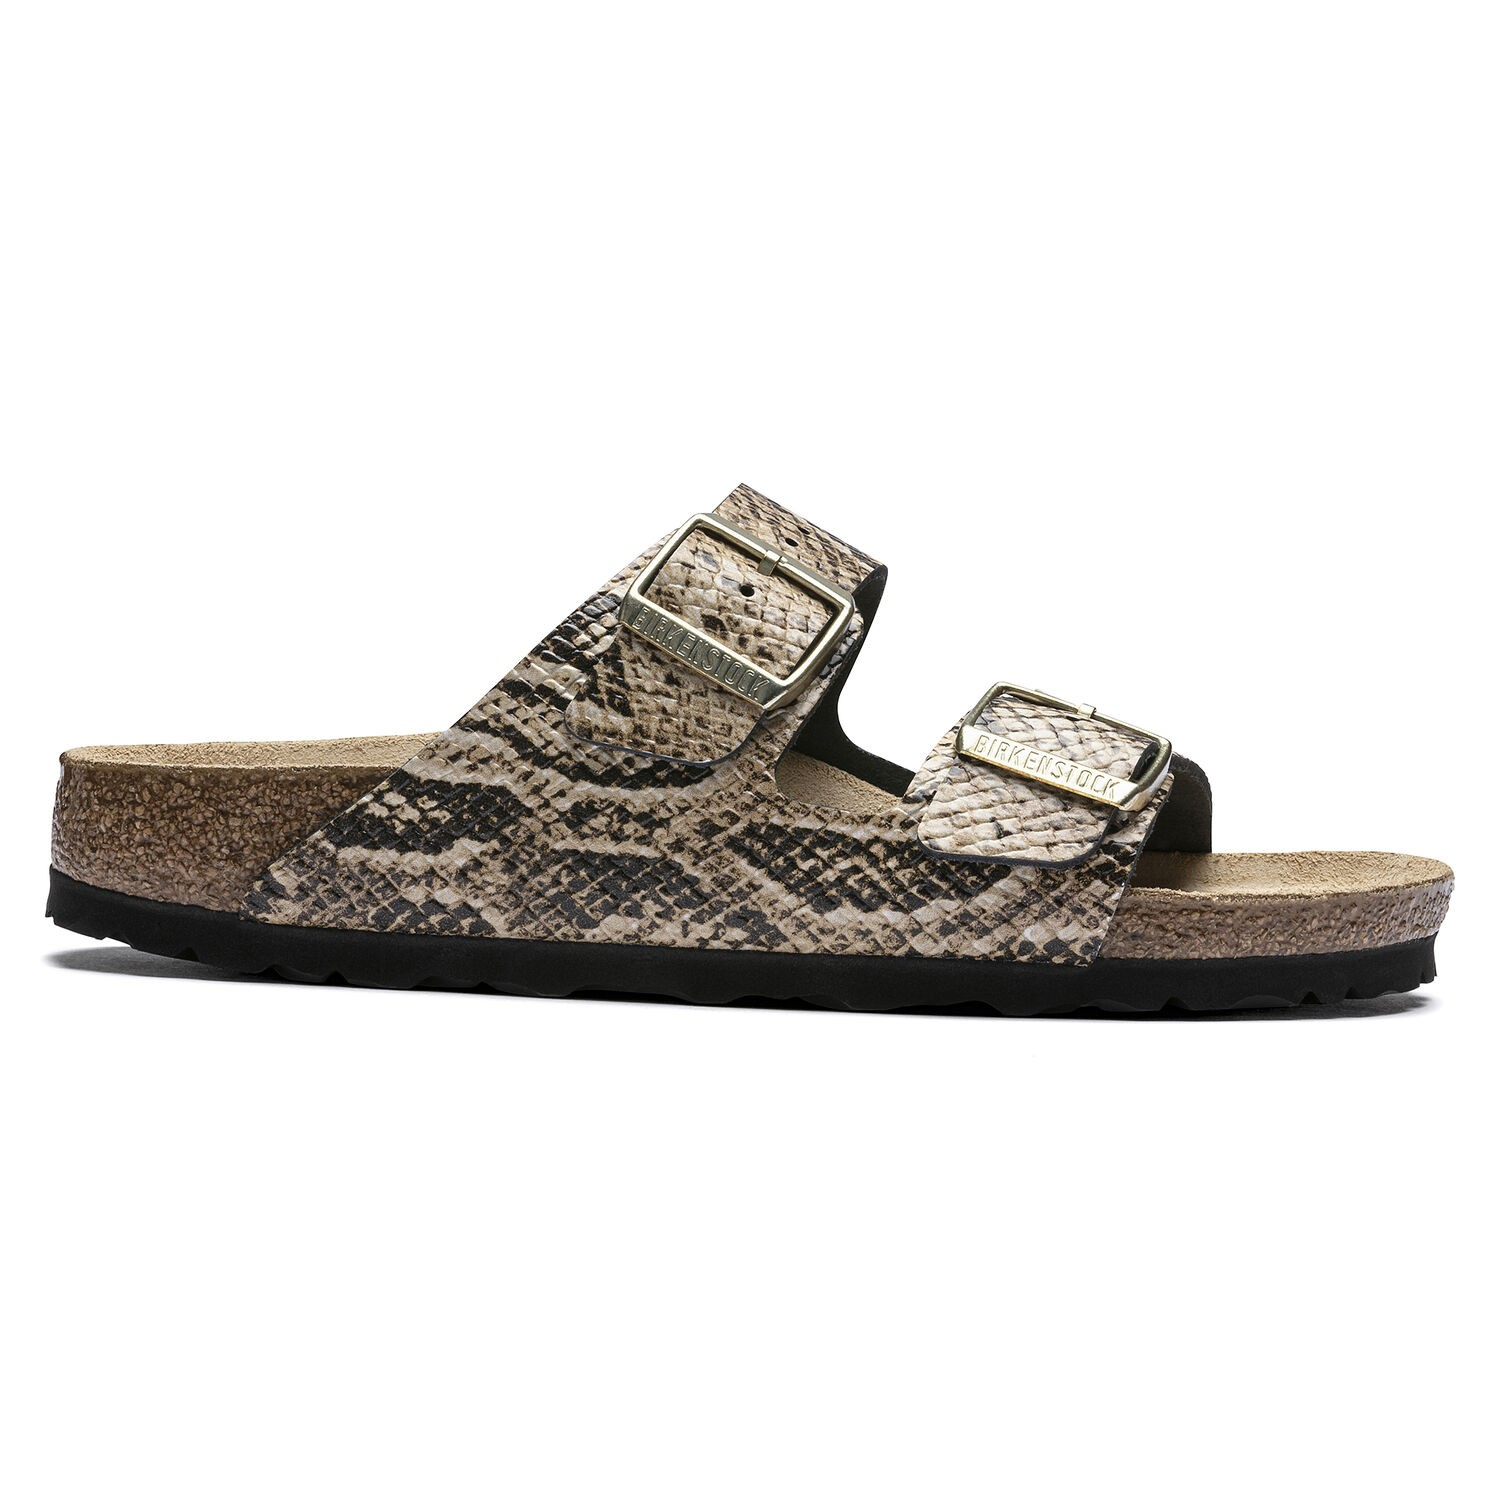 Birkenstock Arizona NL Snake Beige Narrow